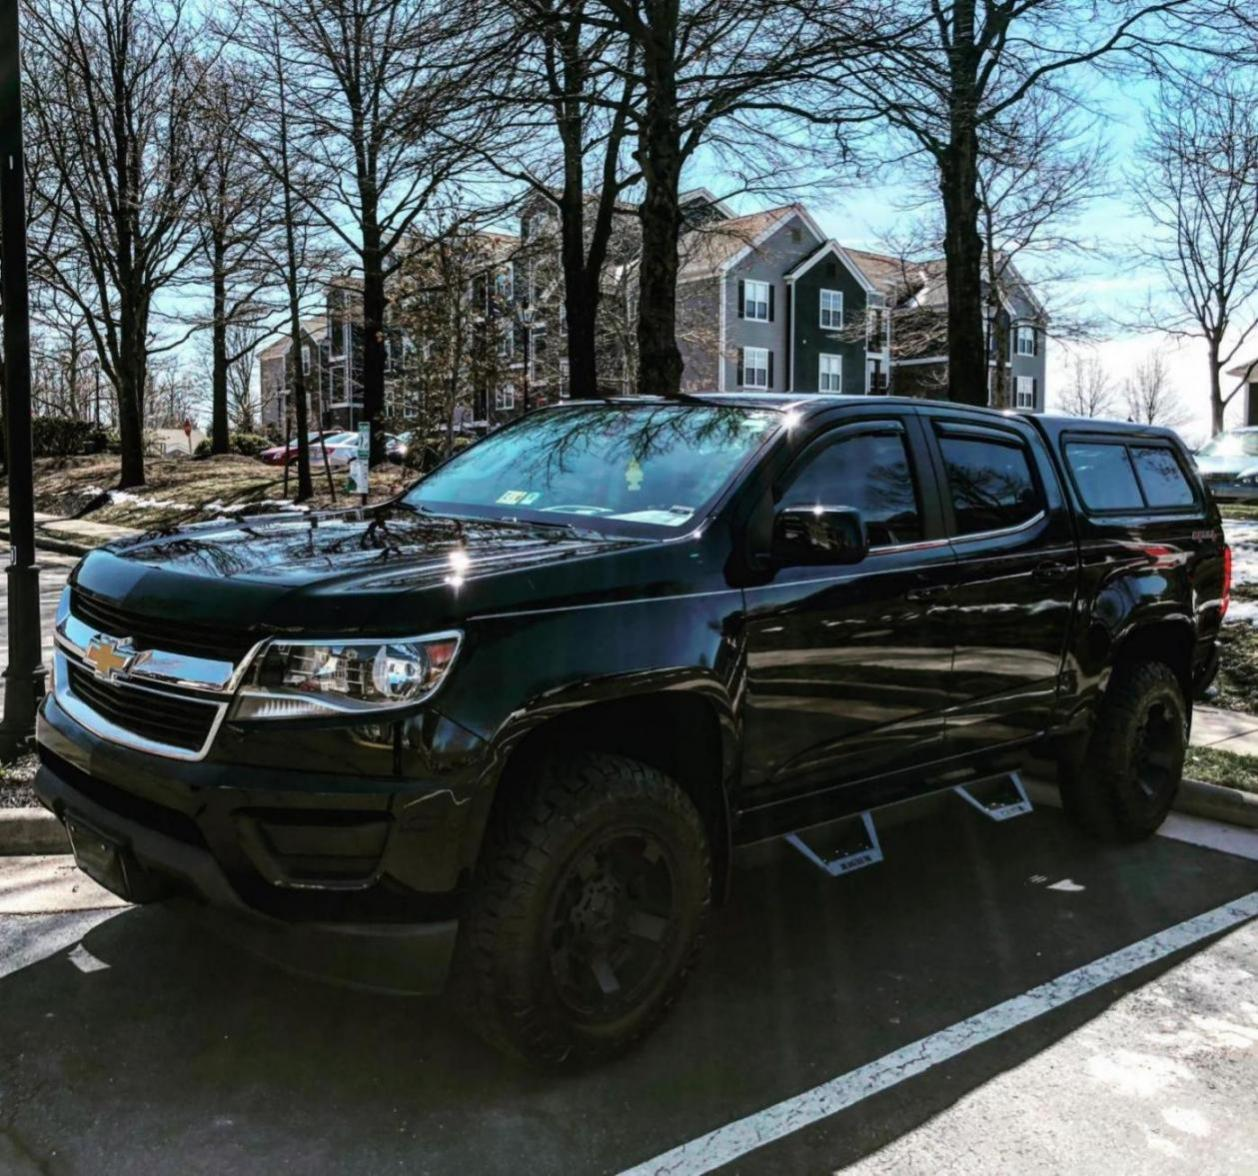 The 2019 Gmc Canyon Mpg New Release: My Experience With The Infamous Tranny Shudder